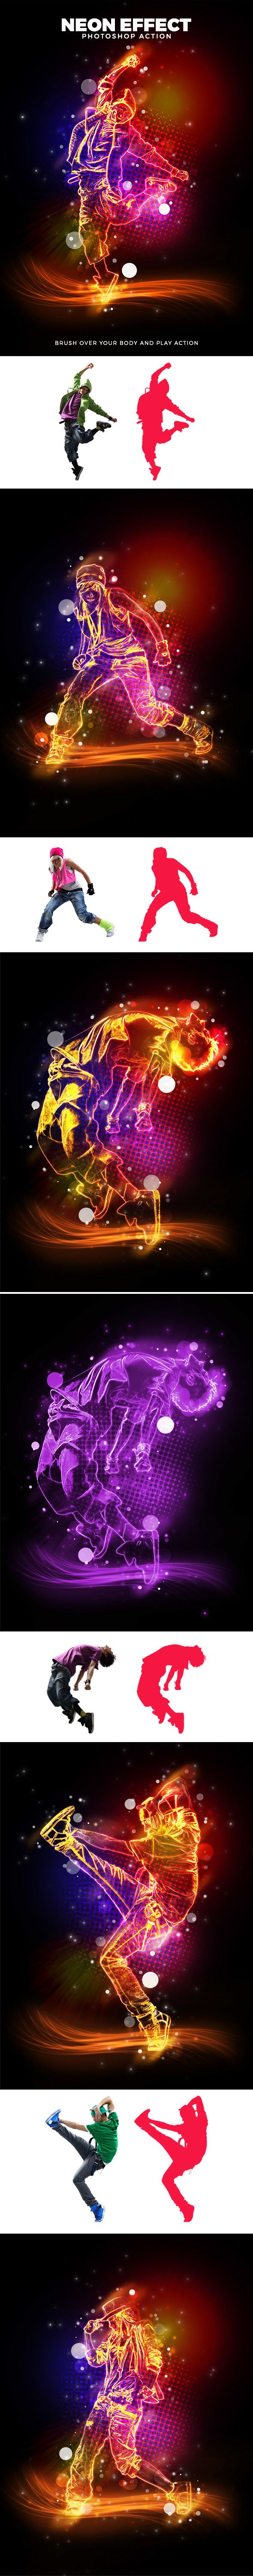 Neon Effect Action - Photo Effects Actions